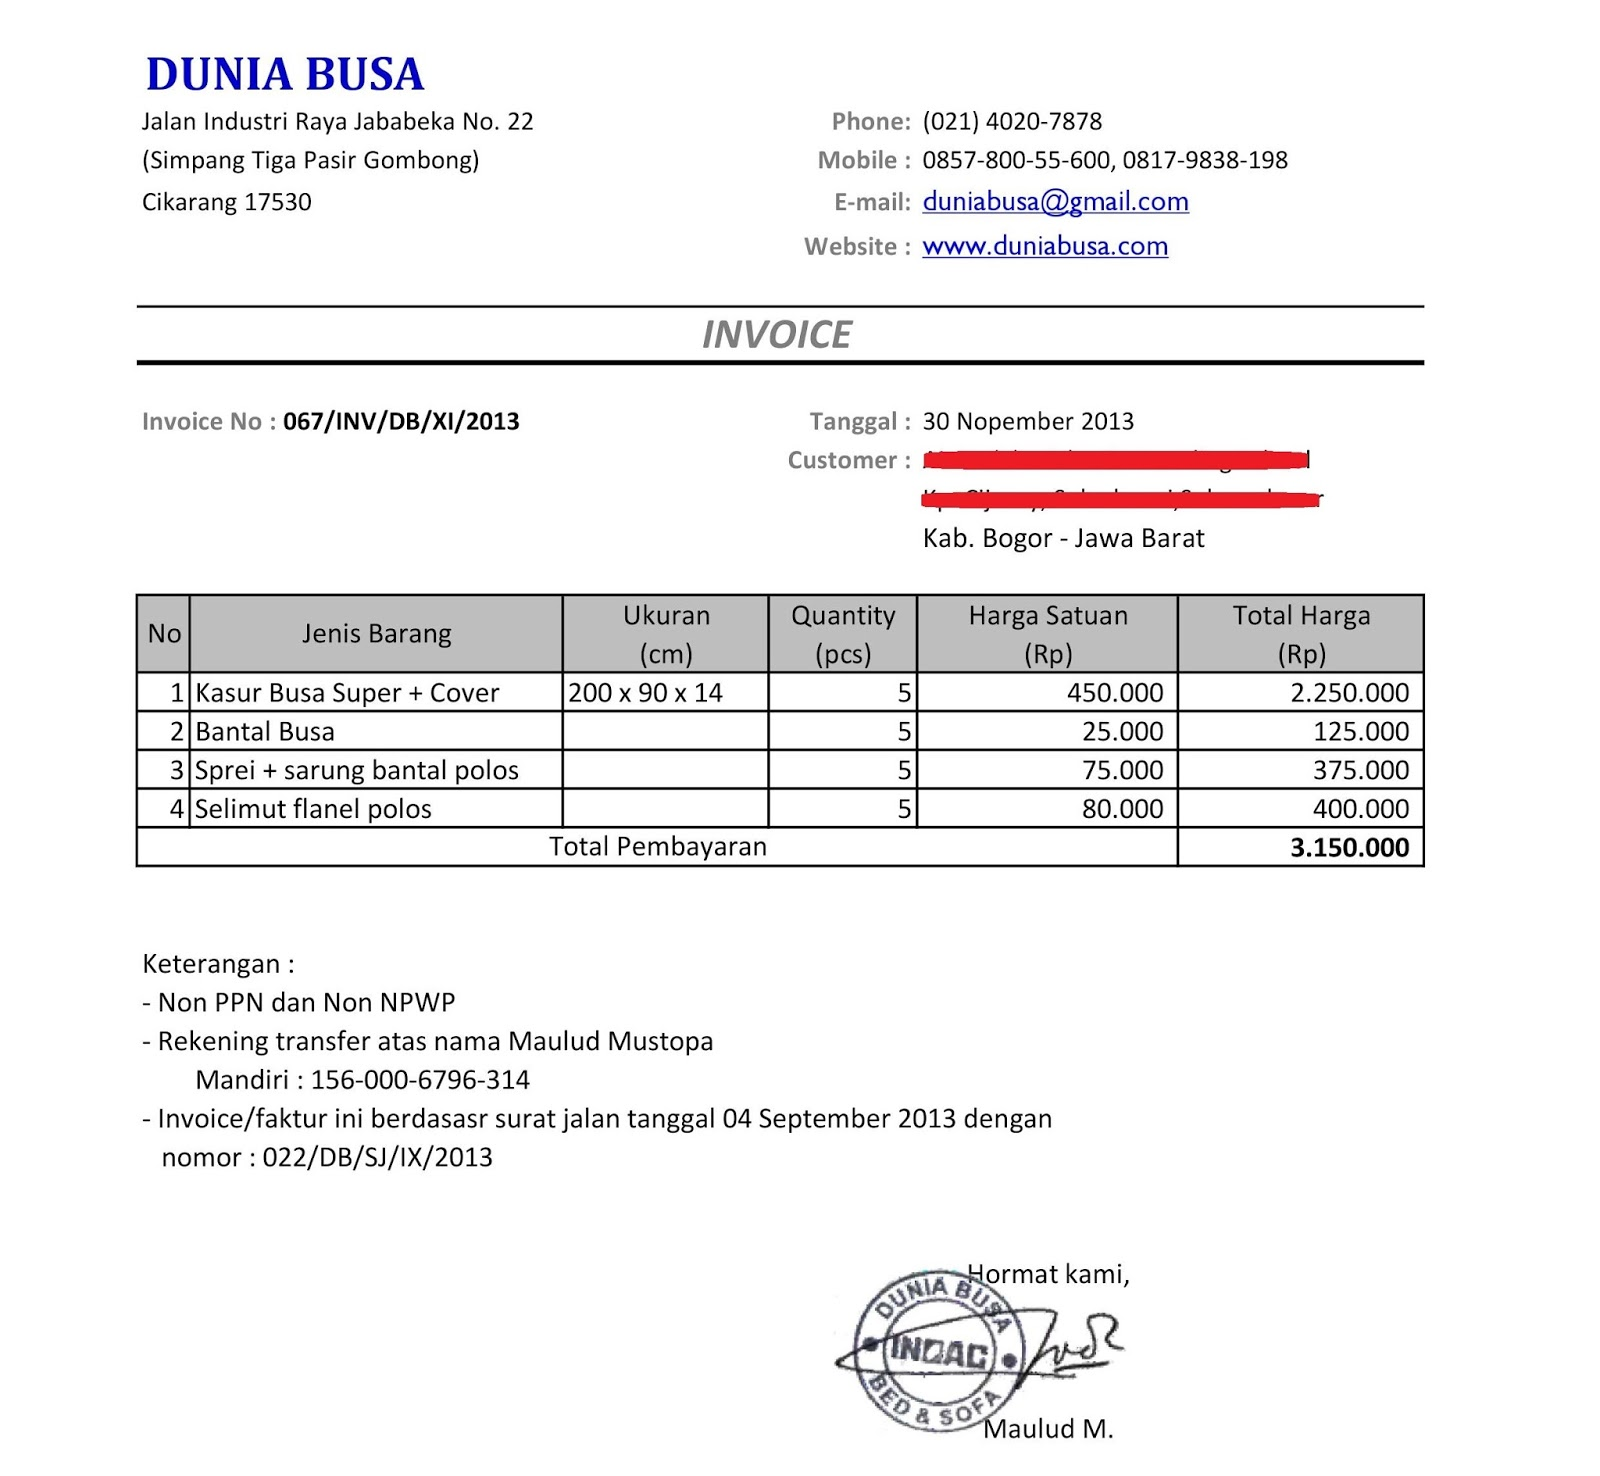 Centralasianshepherdus  Surprising Free Invoice Online  Create Invoice Online  Invoice Template  With Lovely Contoh Format Invoice Atau Surat Tagihan  Brankas Arsip  Free Invoice Online With Divine Uk Invoice Template Excel Also Php Invoice System In Addition Sample Ebay Invoice And Invoice Template Ato As Well As Template For Invoice For Services Additionally Invoice Letter Example From Sklepco With Centralasianshepherdus  Lovely Free Invoice Online  Create Invoice Online  Invoice Template  With Divine Contoh Format Invoice Atau Surat Tagihan  Brankas Arsip  Free Invoice Online And Surprising Uk Invoice Template Excel Also Php Invoice System In Addition Sample Ebay Invoice From Sklepco